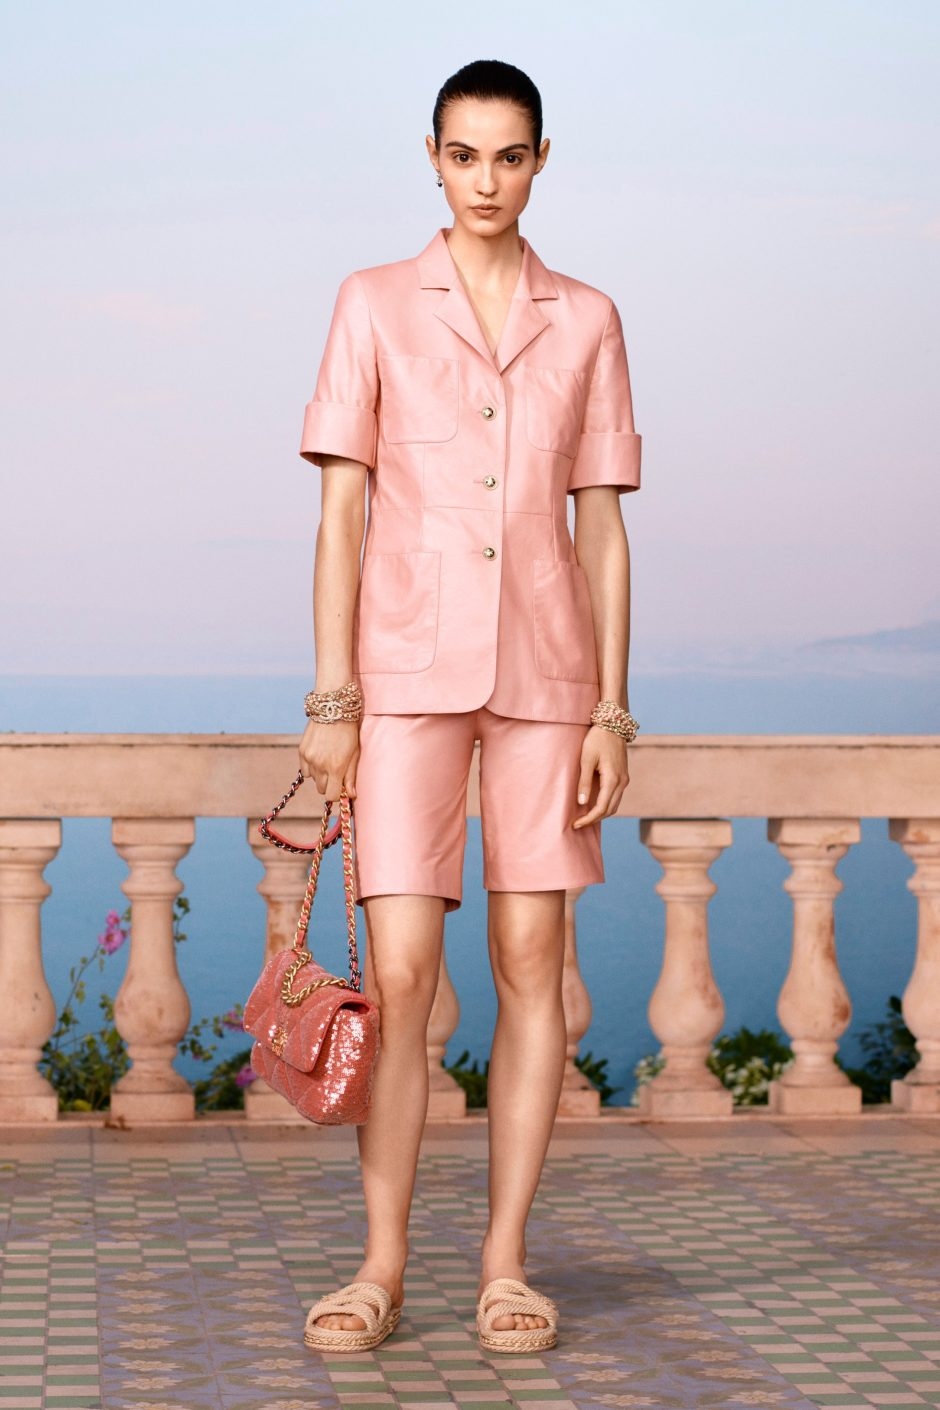 00011-Chanel-Resort-2021